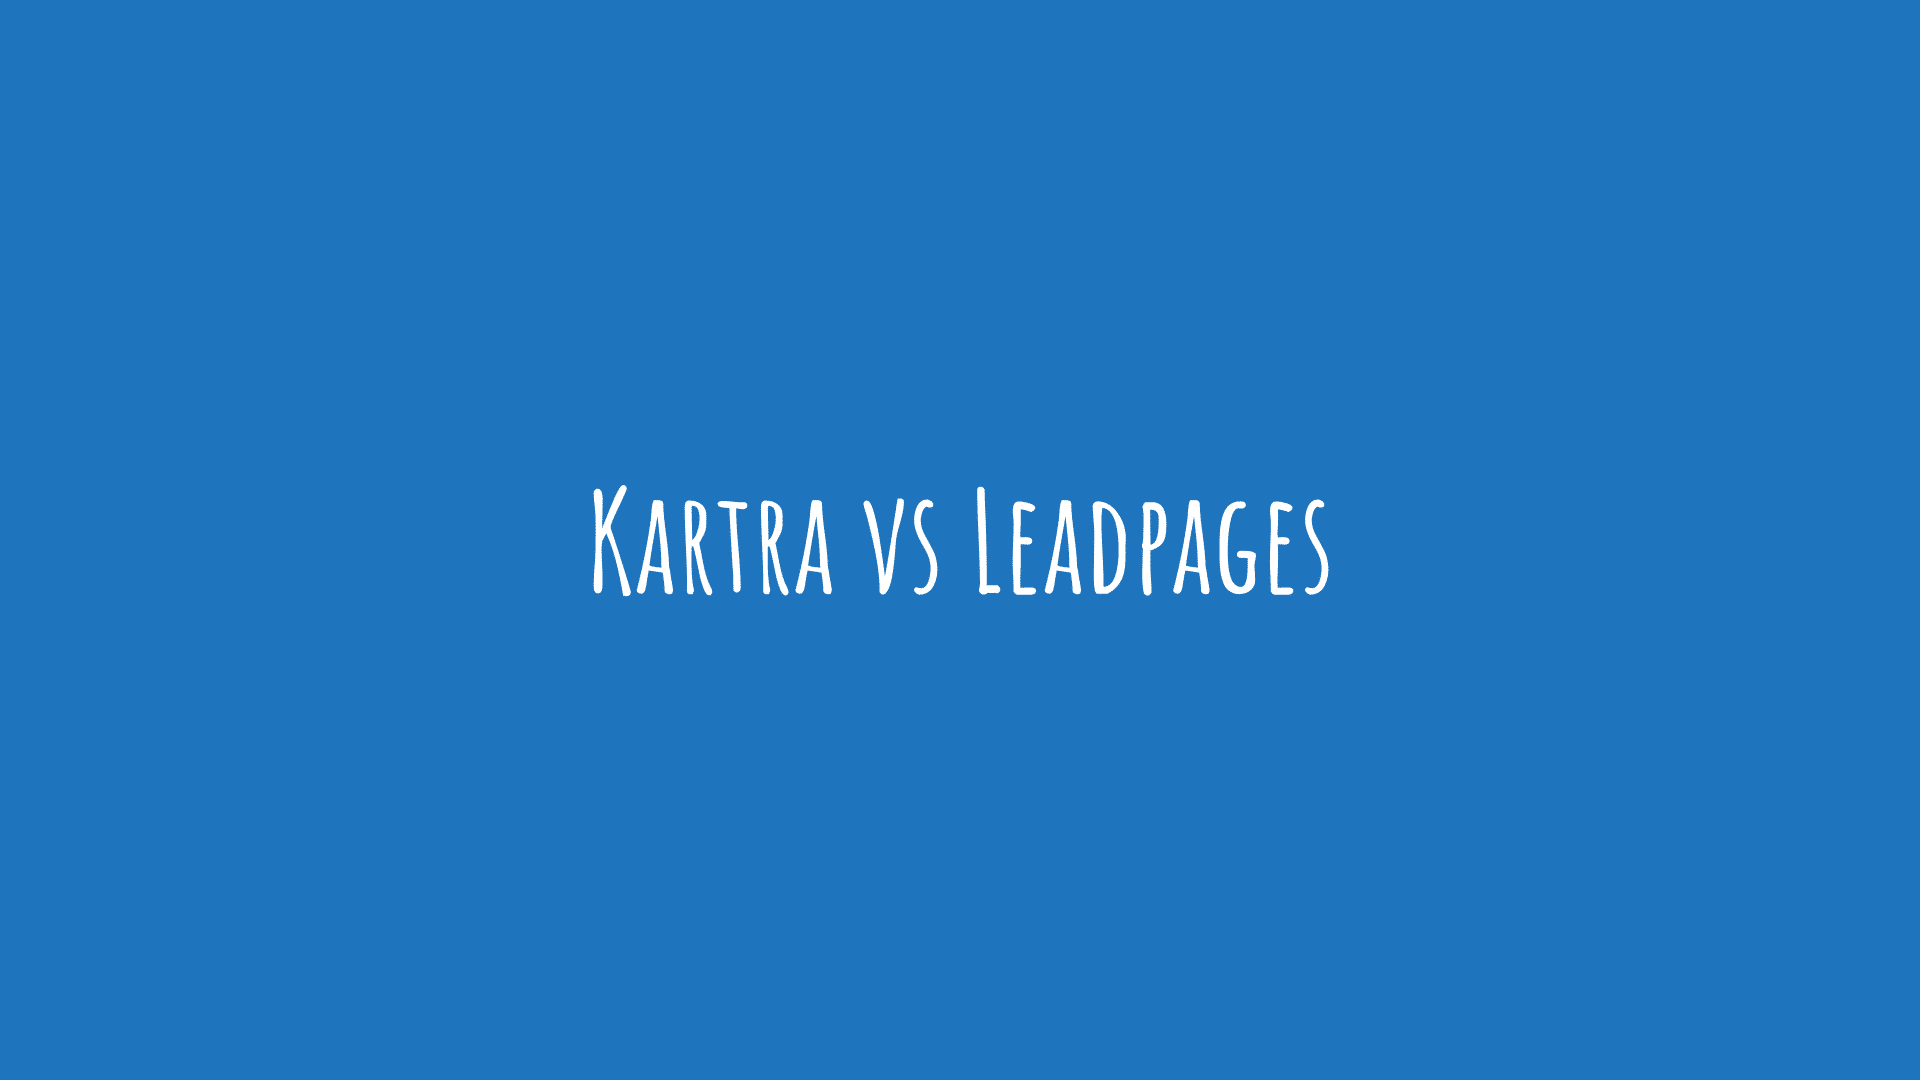 Kartra vs Leadpages